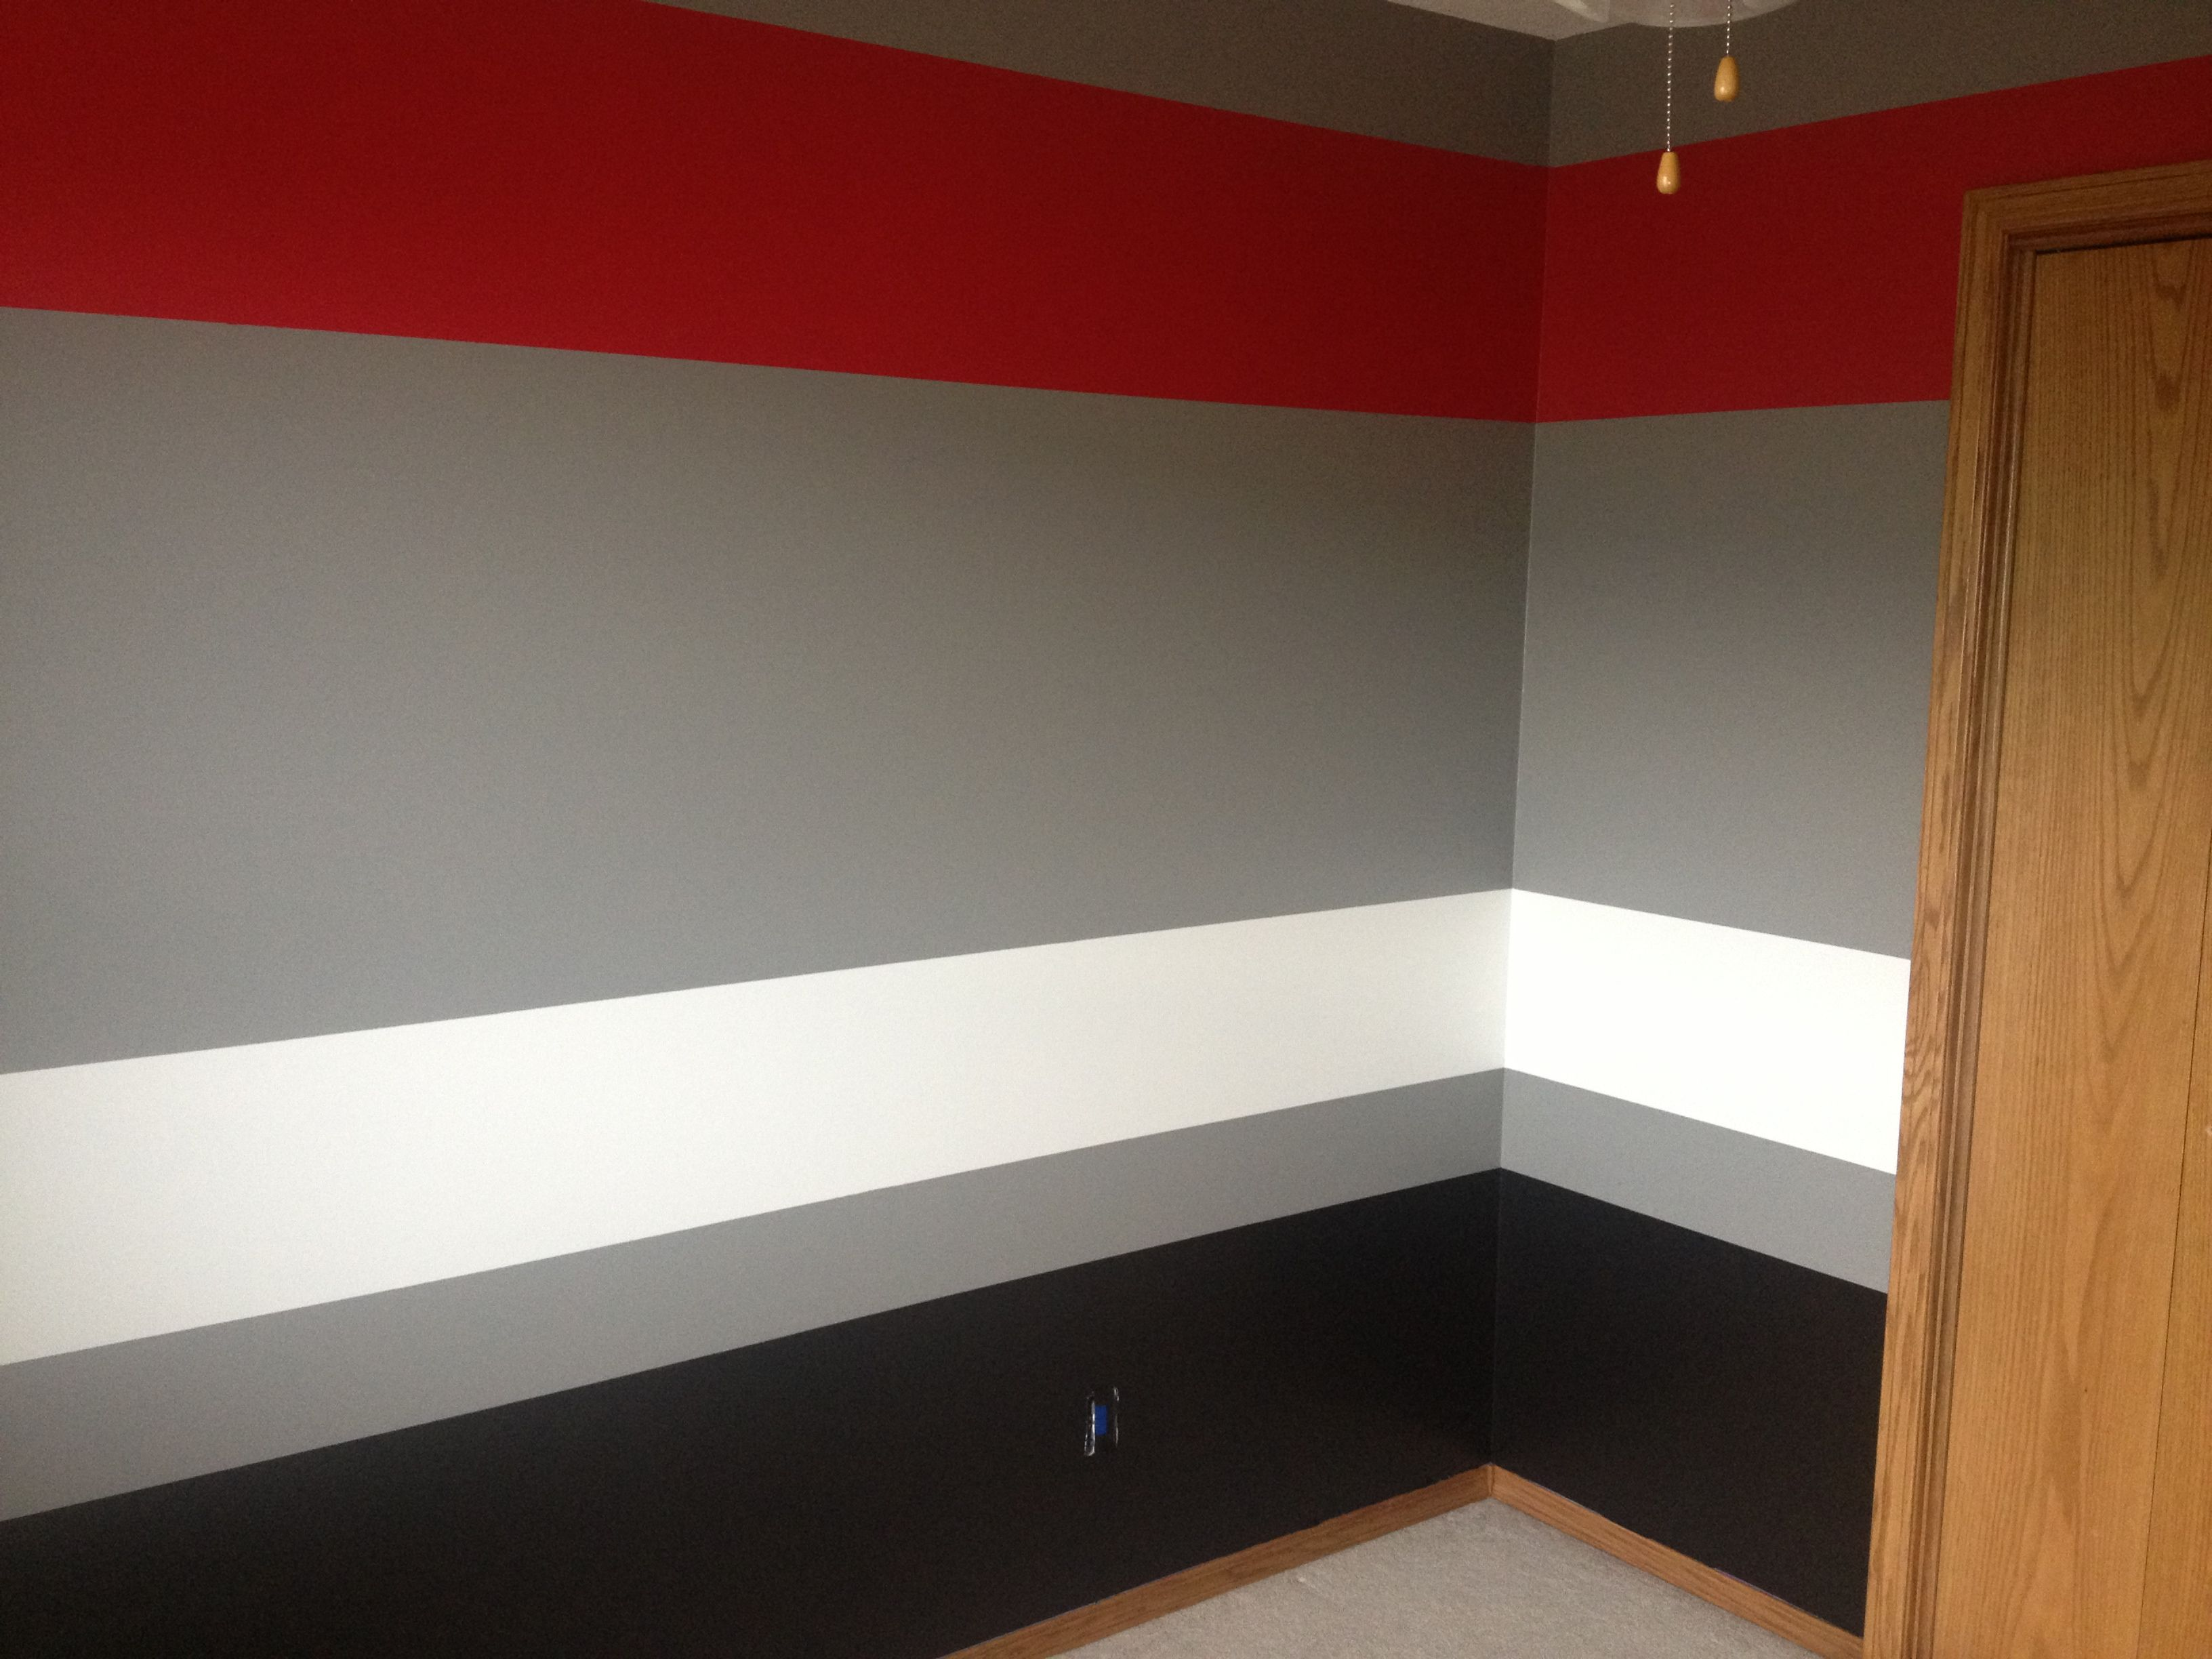 Painted room grey red white black rooms pinterest for Grey wall ideas